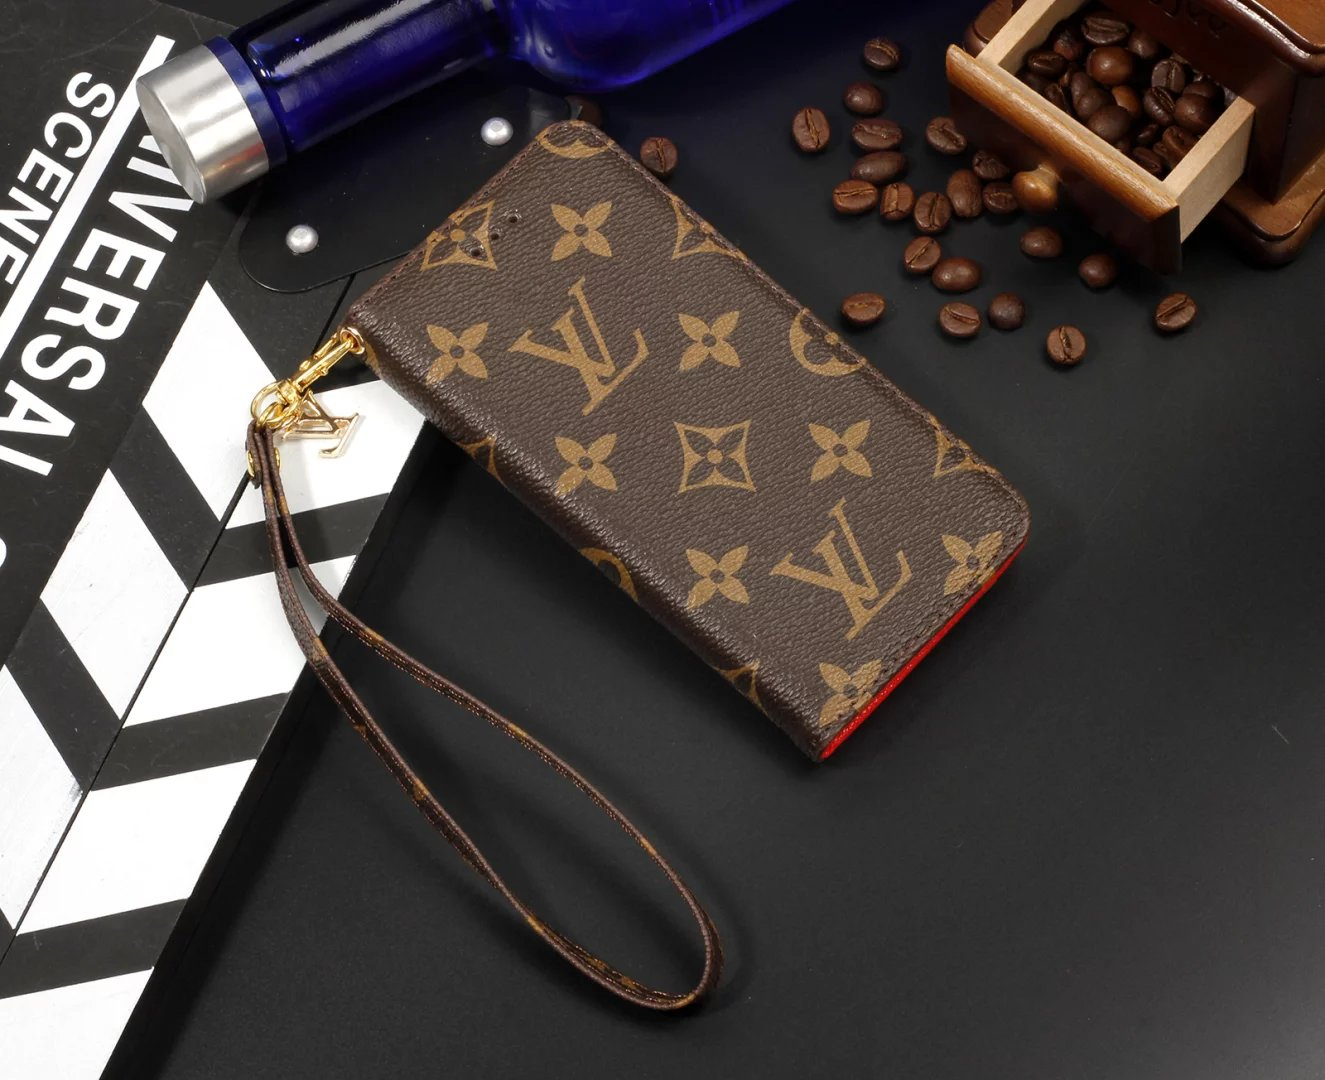 iphone case selbst gestalten günstig iphone hülle designen Louis Vuitton iphone7 Plus hülle gehäu7 iphone 7 Plus handy ledertasche iphone 7 Plus günstige iphone hüllen was kann das iphone 6 alles apple hülle 7 iphone 7 Plus tasche für gürtel